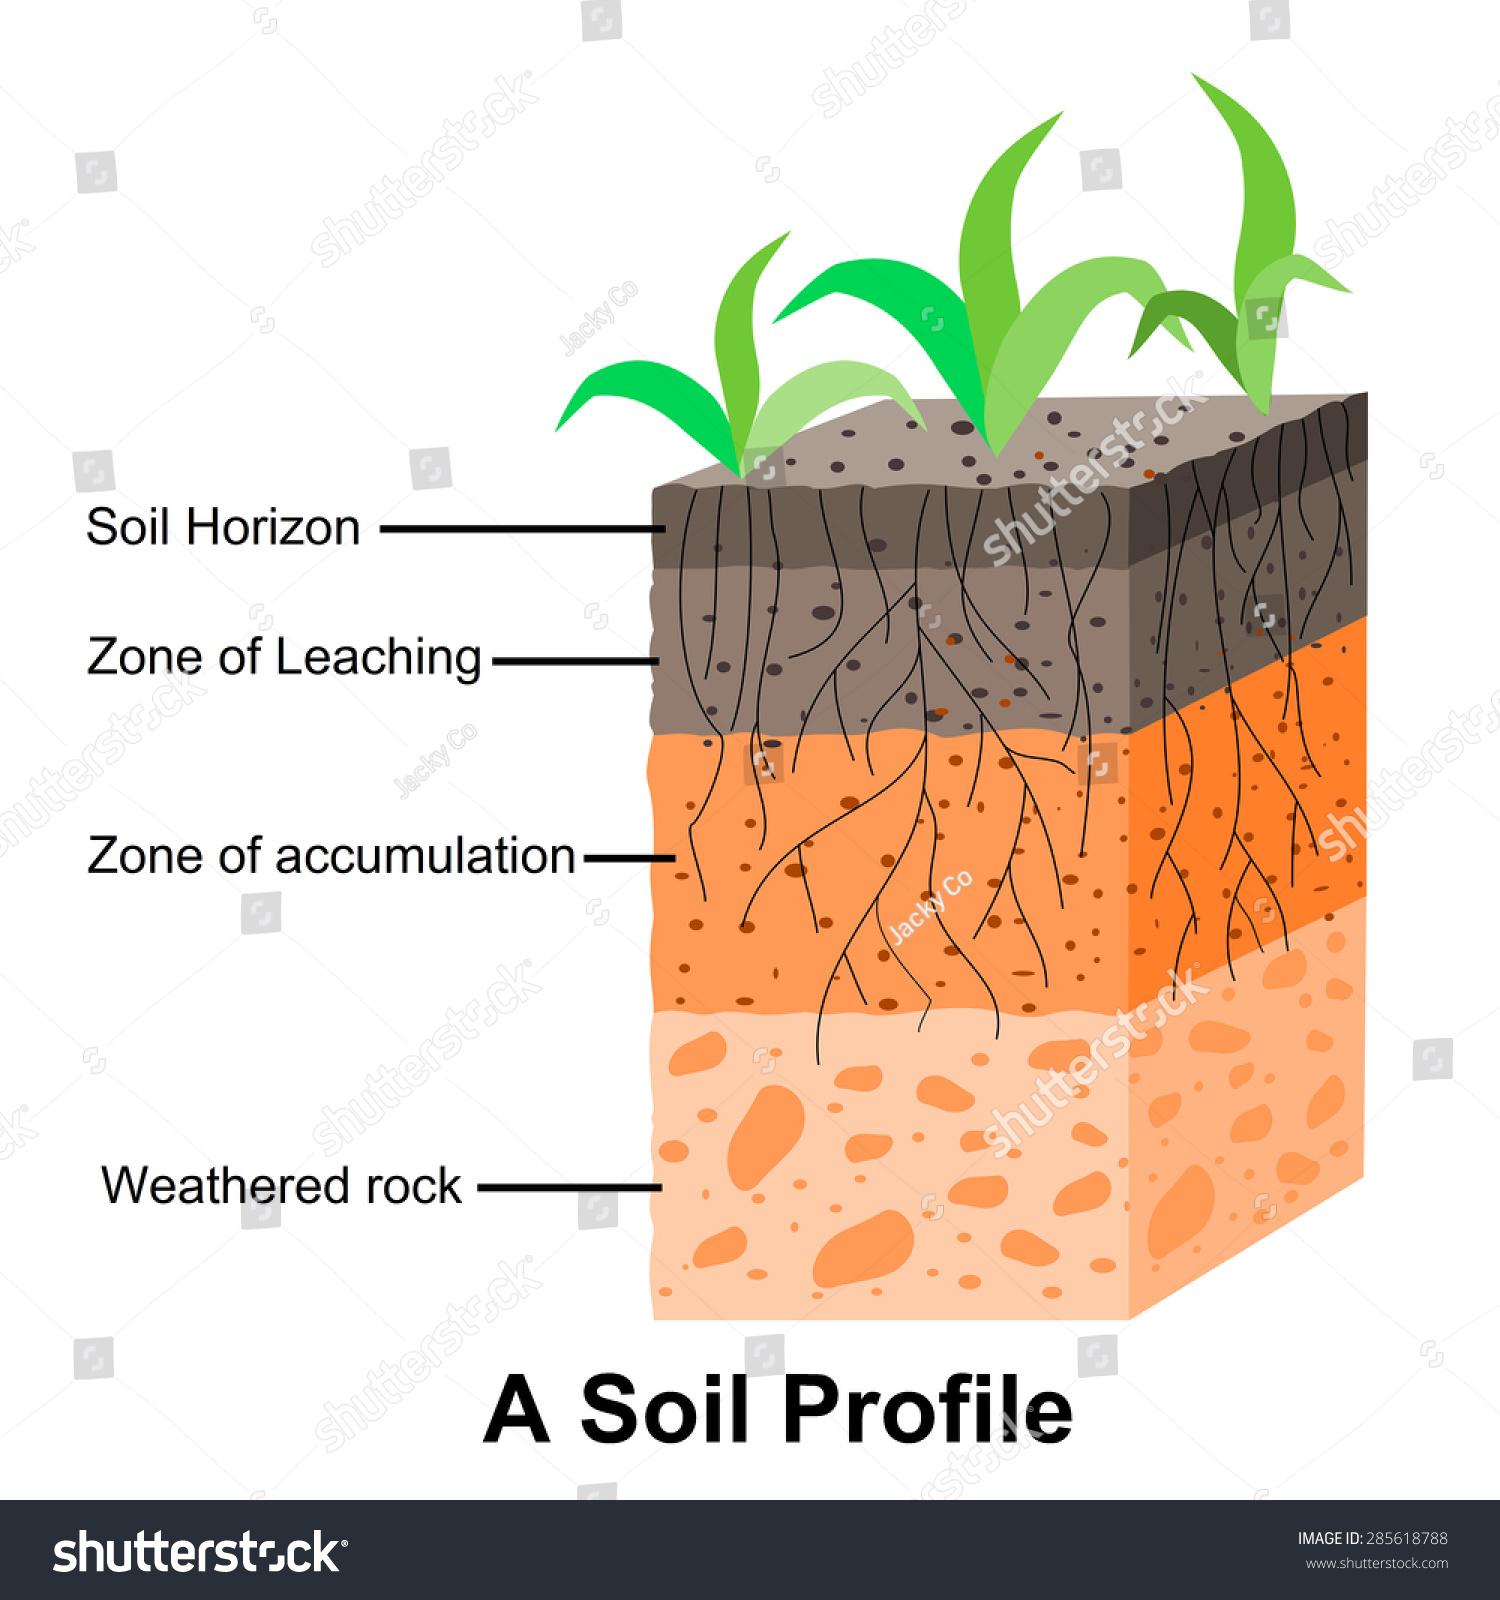 Worksheet Soil Horizons Worksheet Grass Fedjp Worksheet